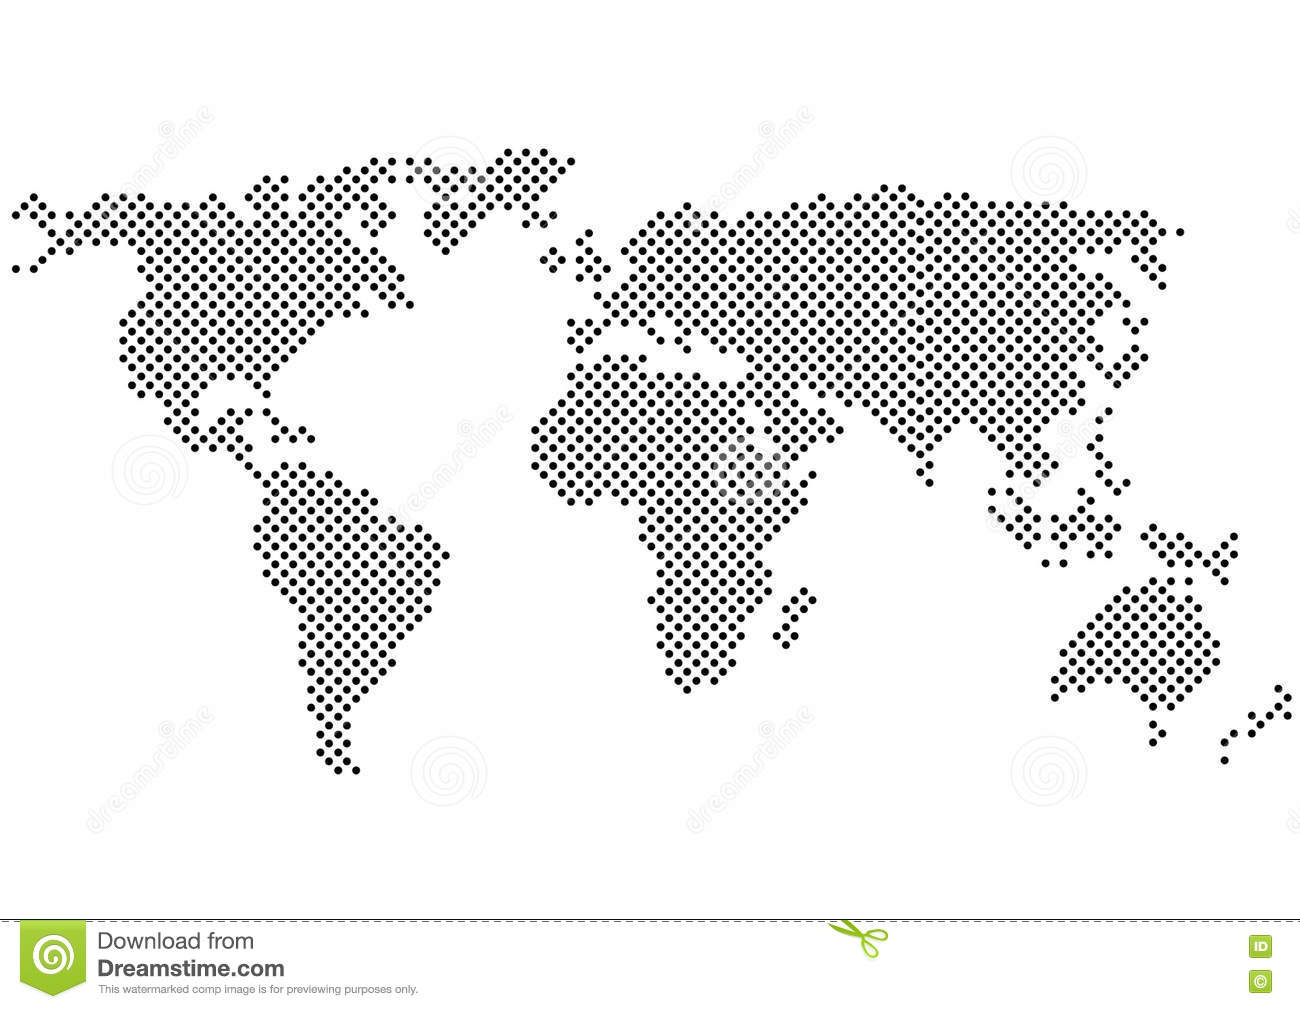 Black and white polka dots world map silhouette stock vector black and white polka dots world map silhouette royalty free vector download gumiabroncs Image collections